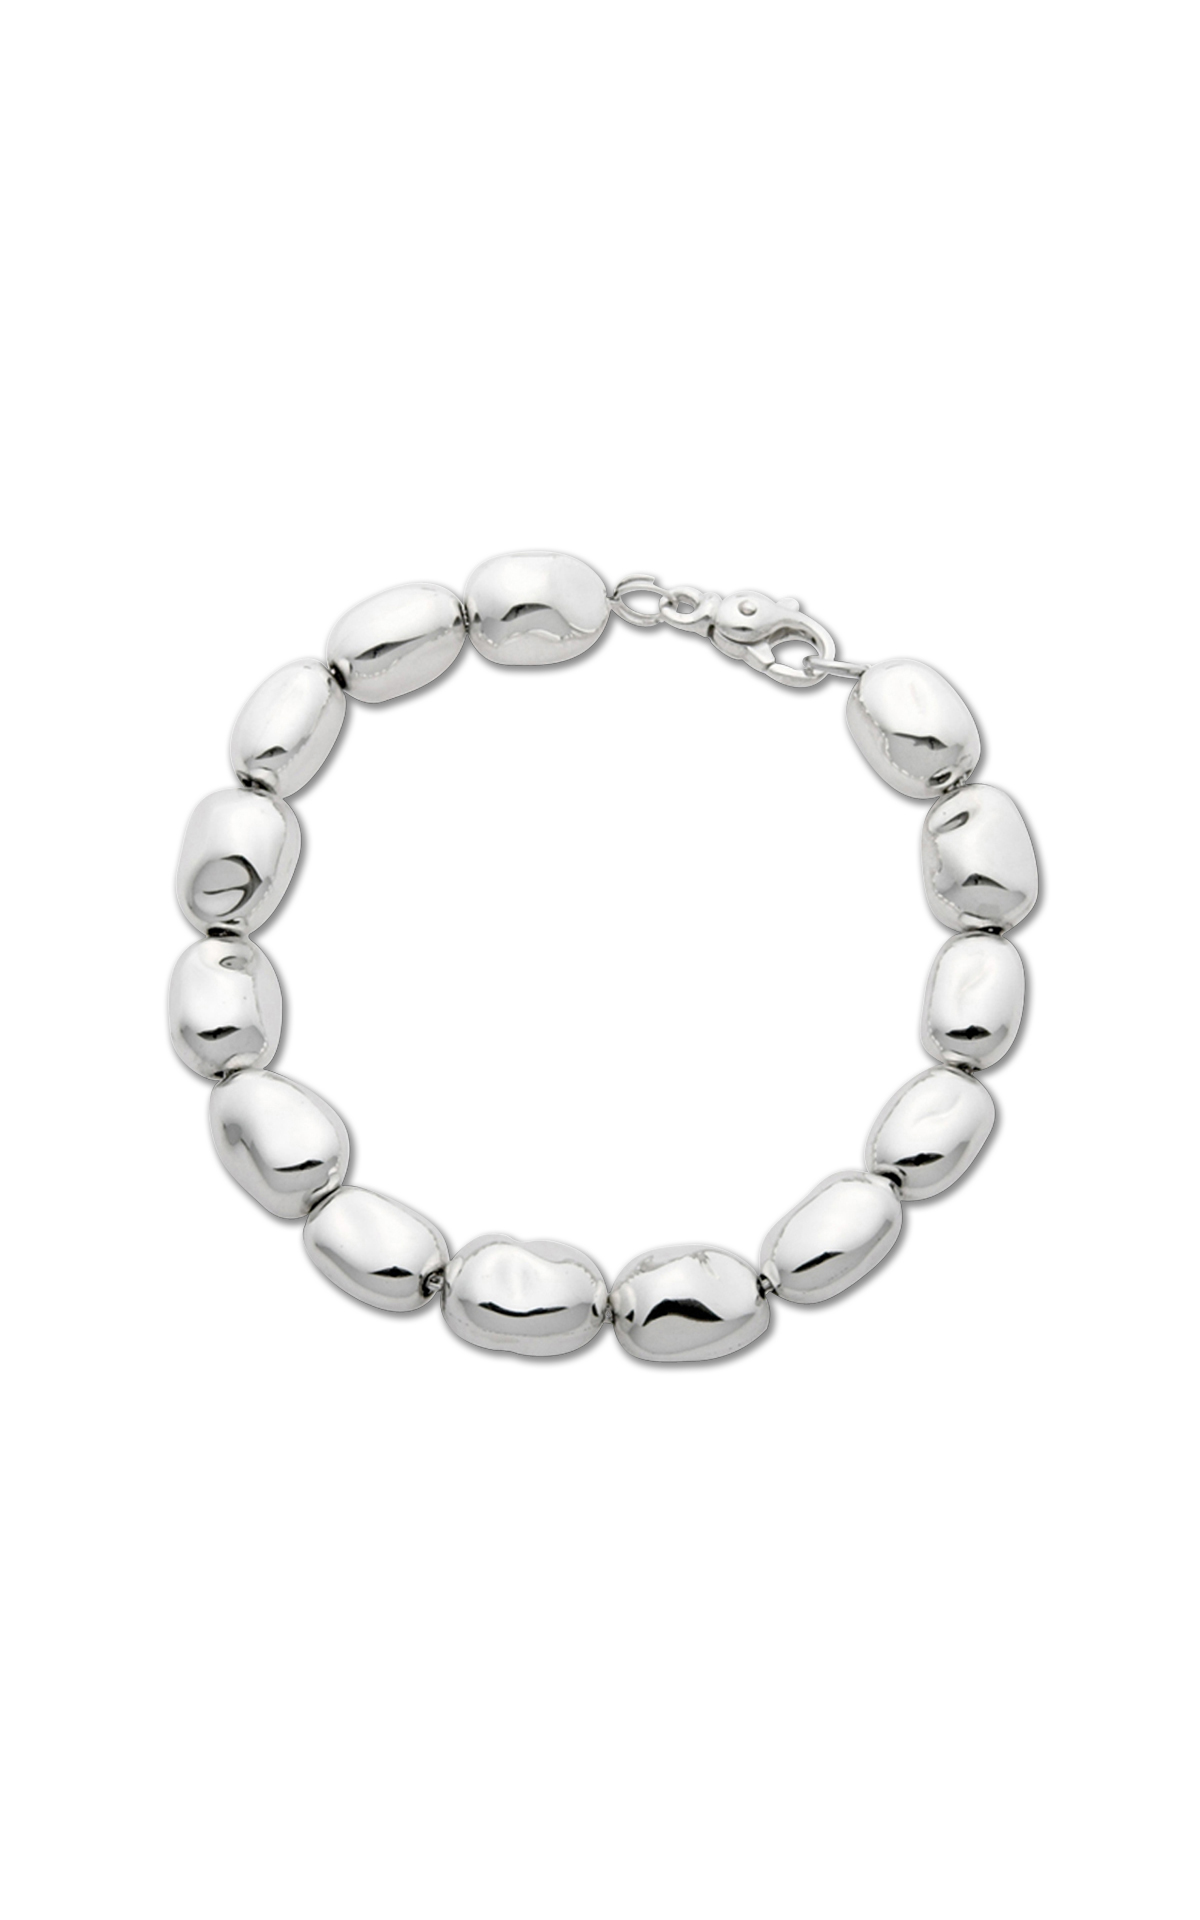 Zina Waves and Meditation Bracelet A375-7 product image